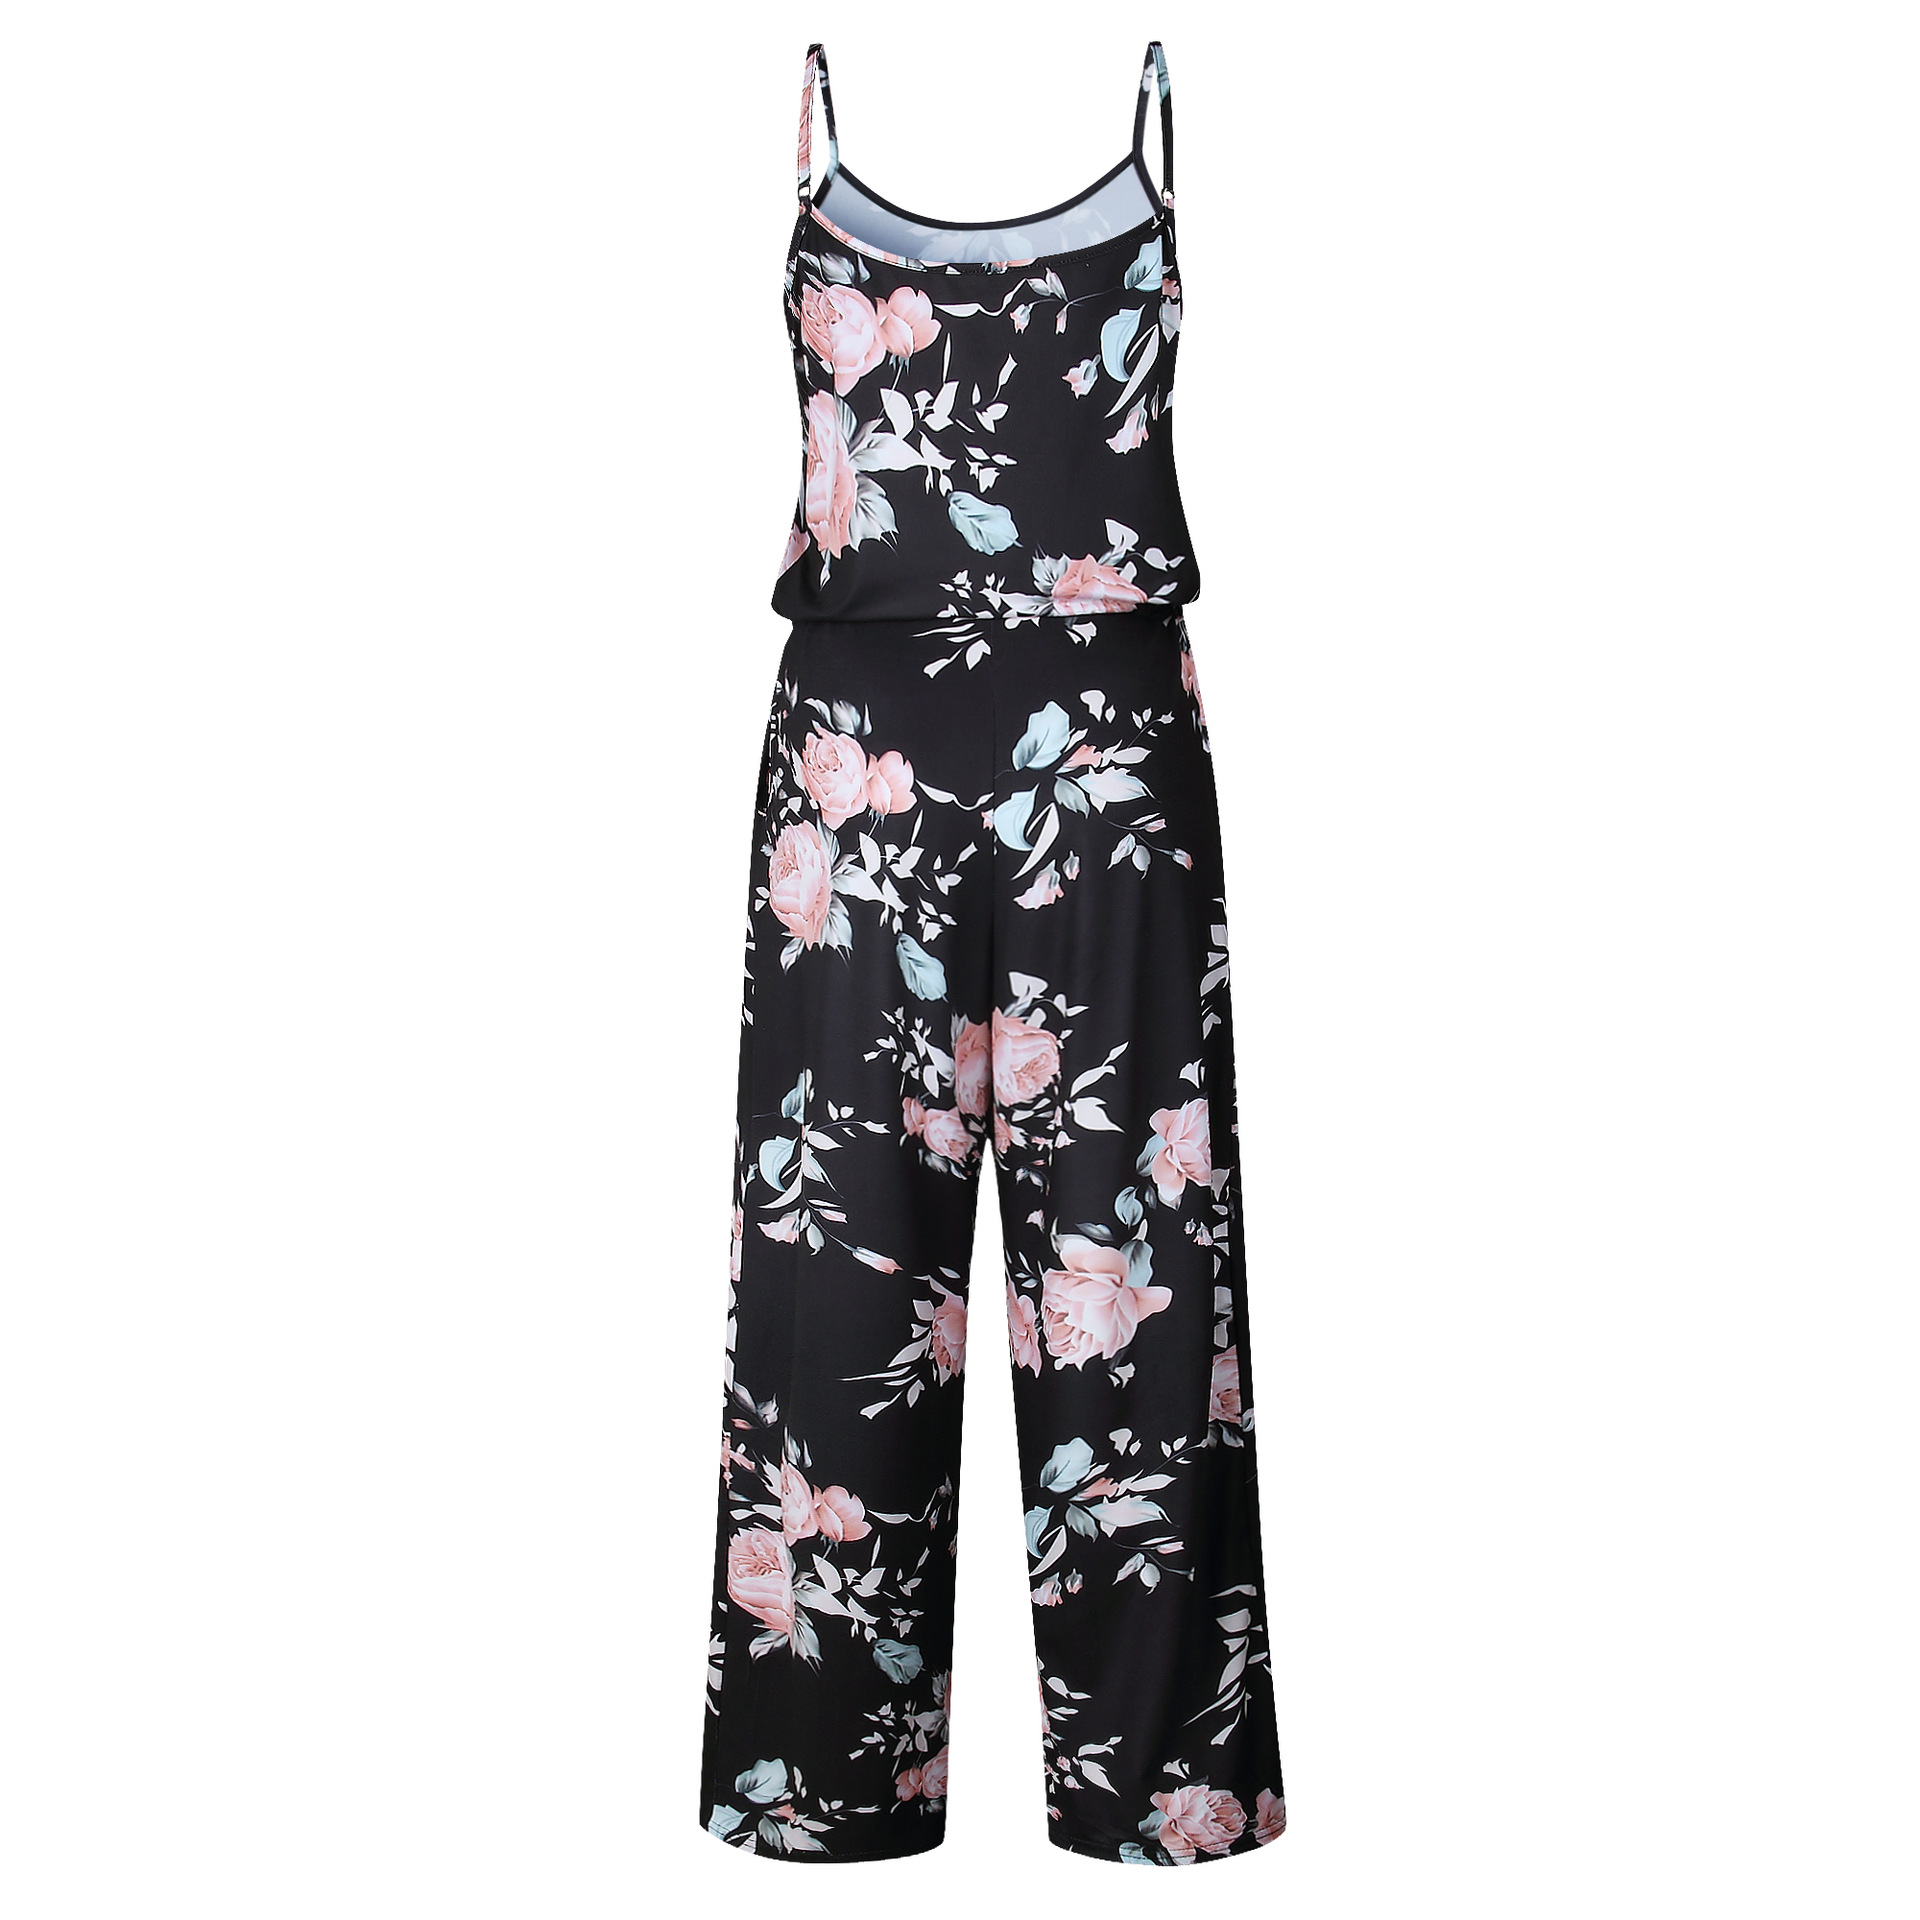 Spaghetti Strap Jumpsuit Women 2018 Summer Long Pants Floral Print Rompers Beach Casual Jumpsuits Sleeveless Sashes Playsuits 28